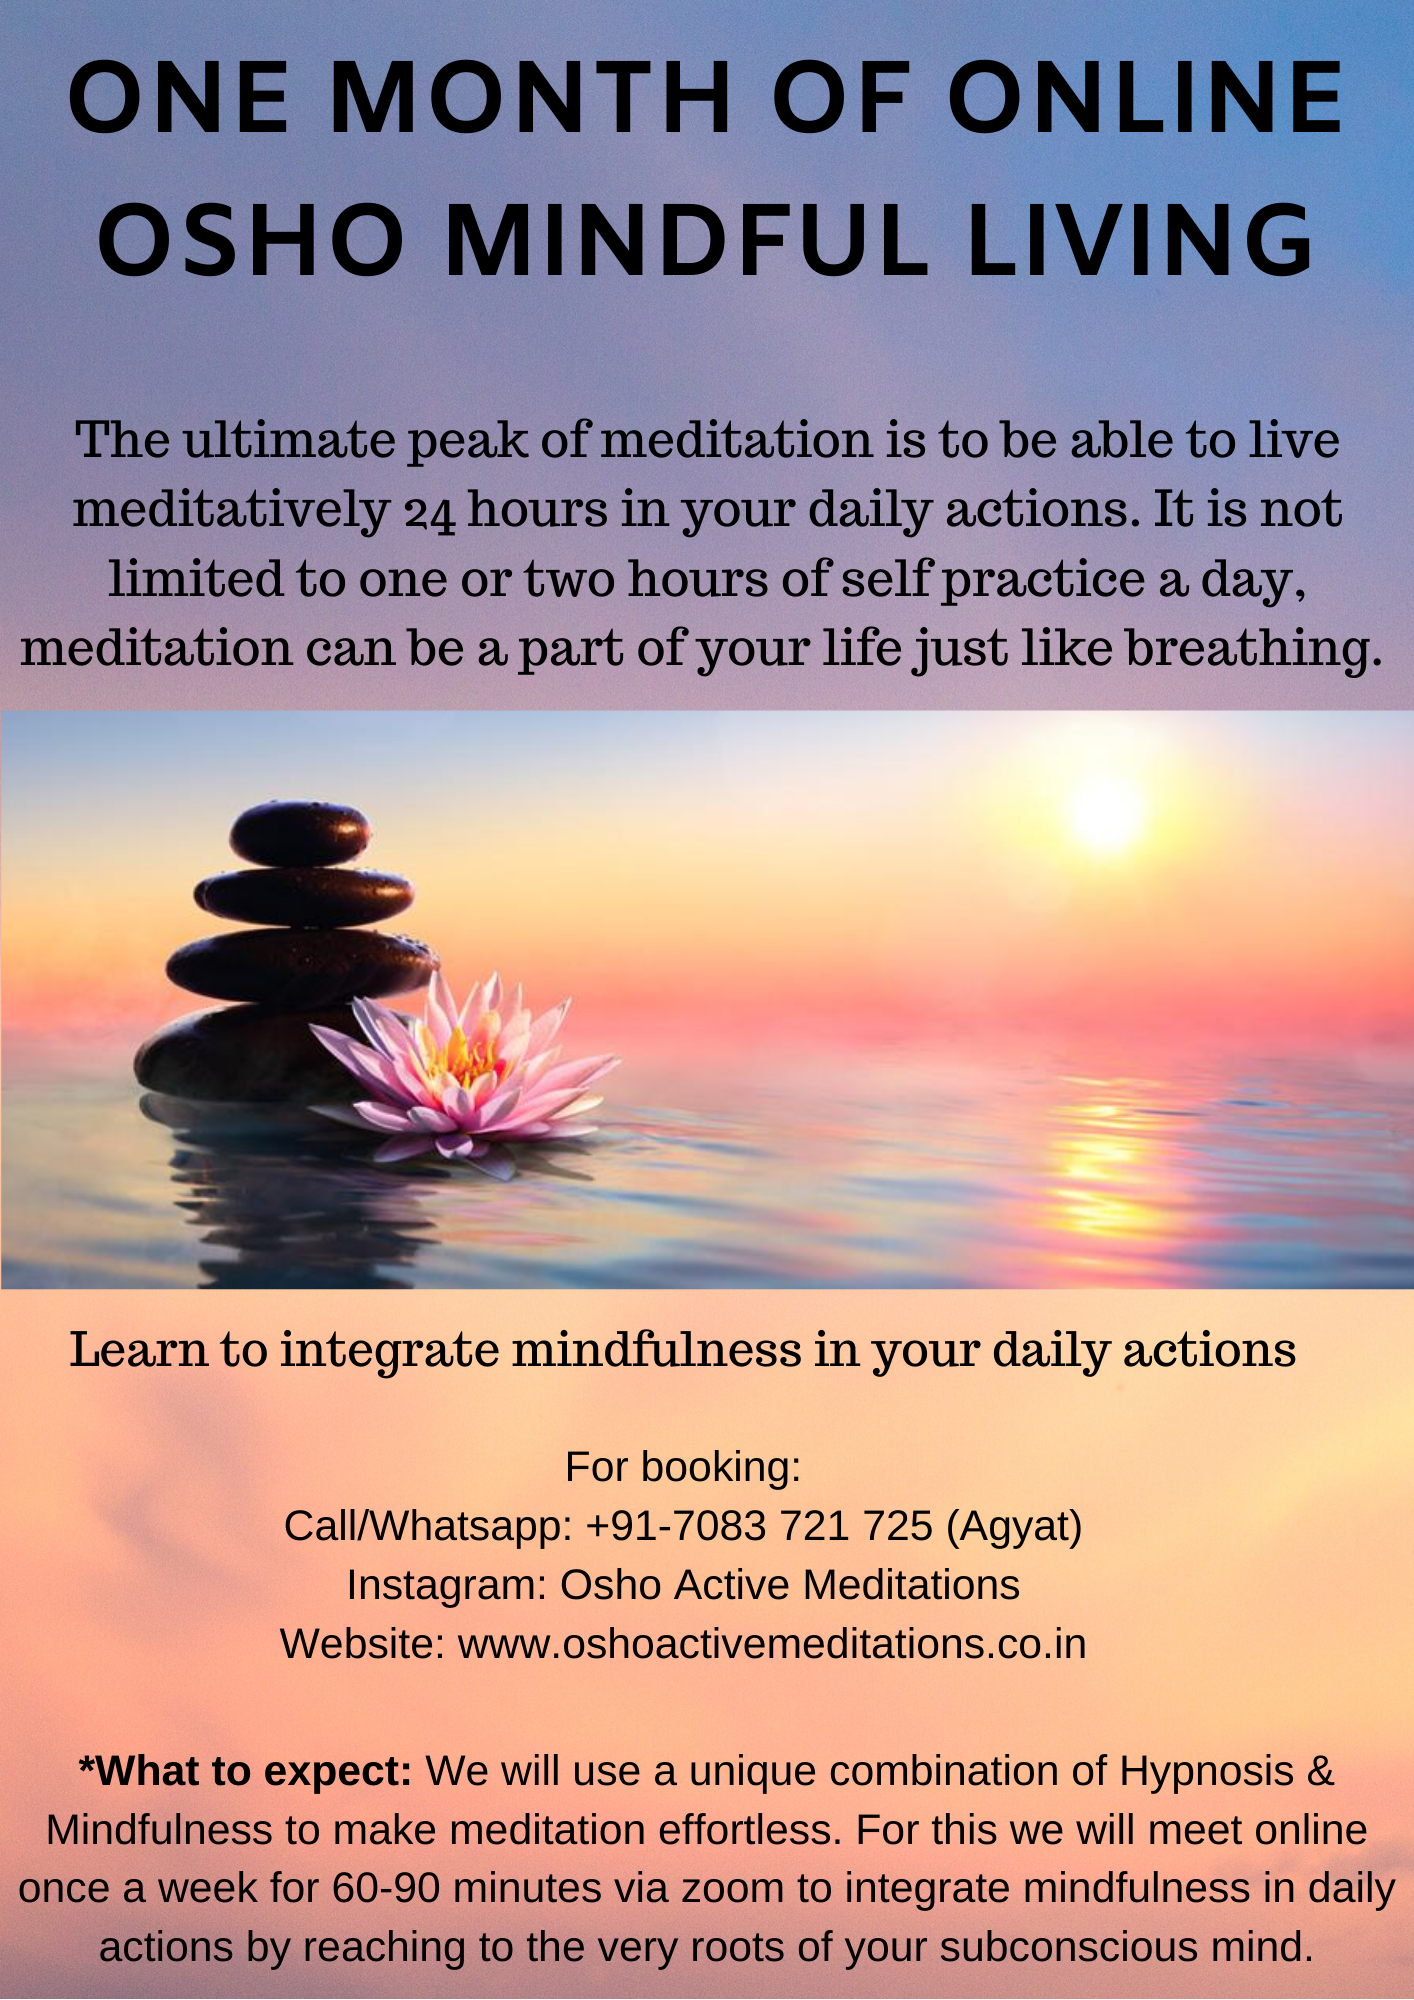 One Month of Online Osho Mindful Living